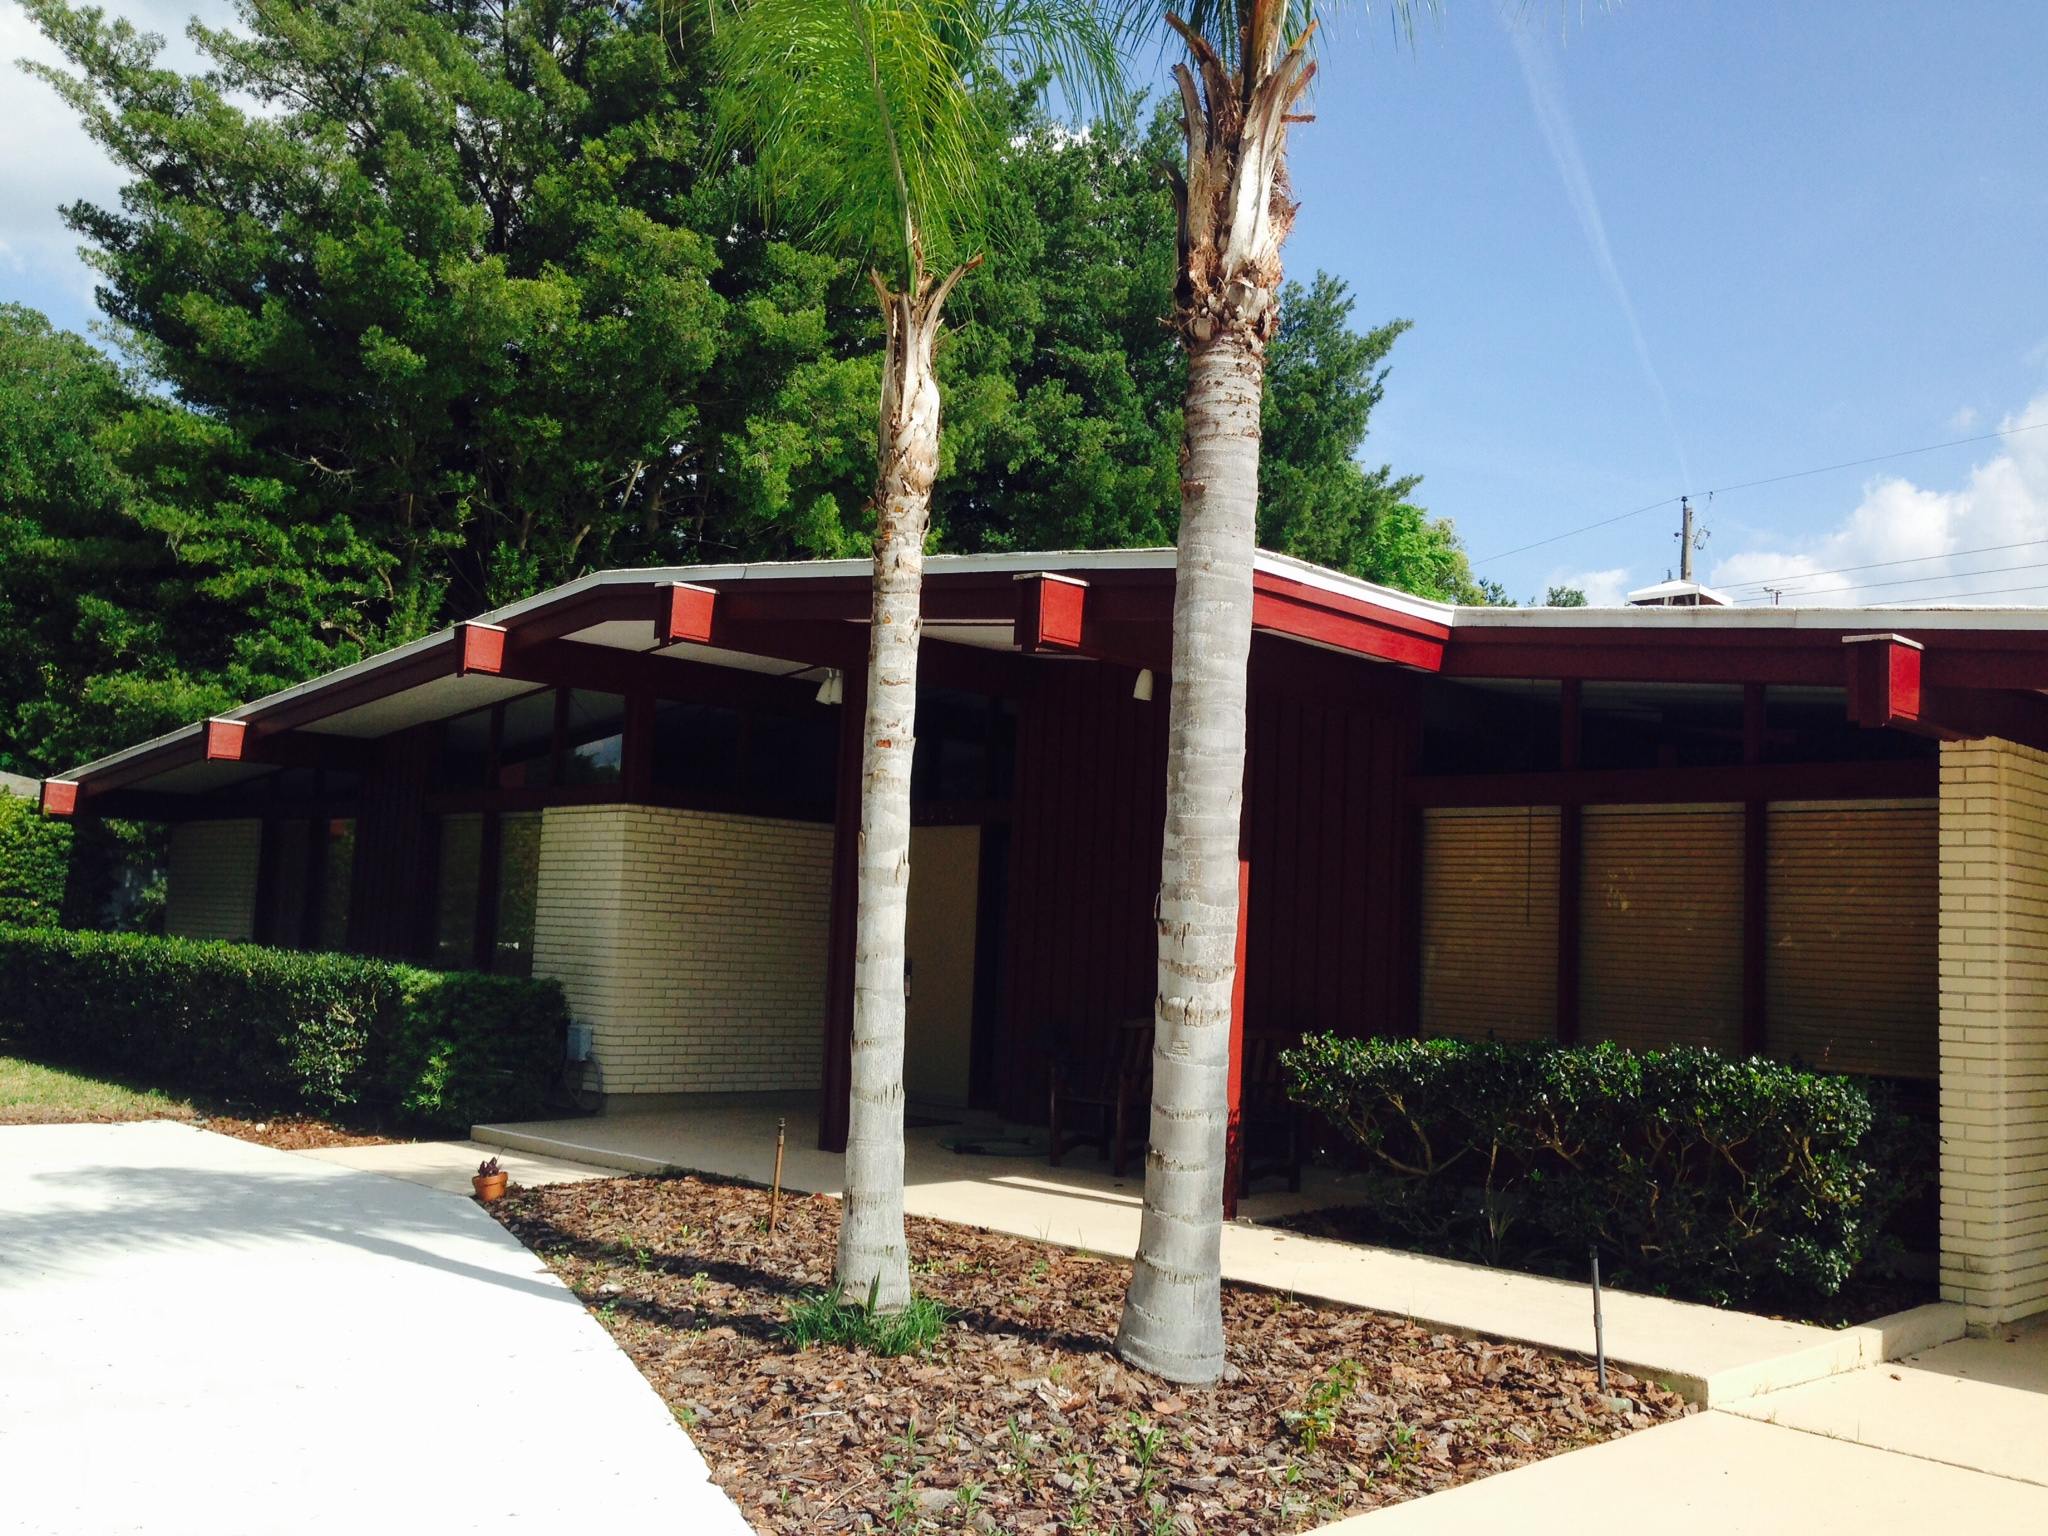 mid century modern homes for sale st petersburg fl - home modern